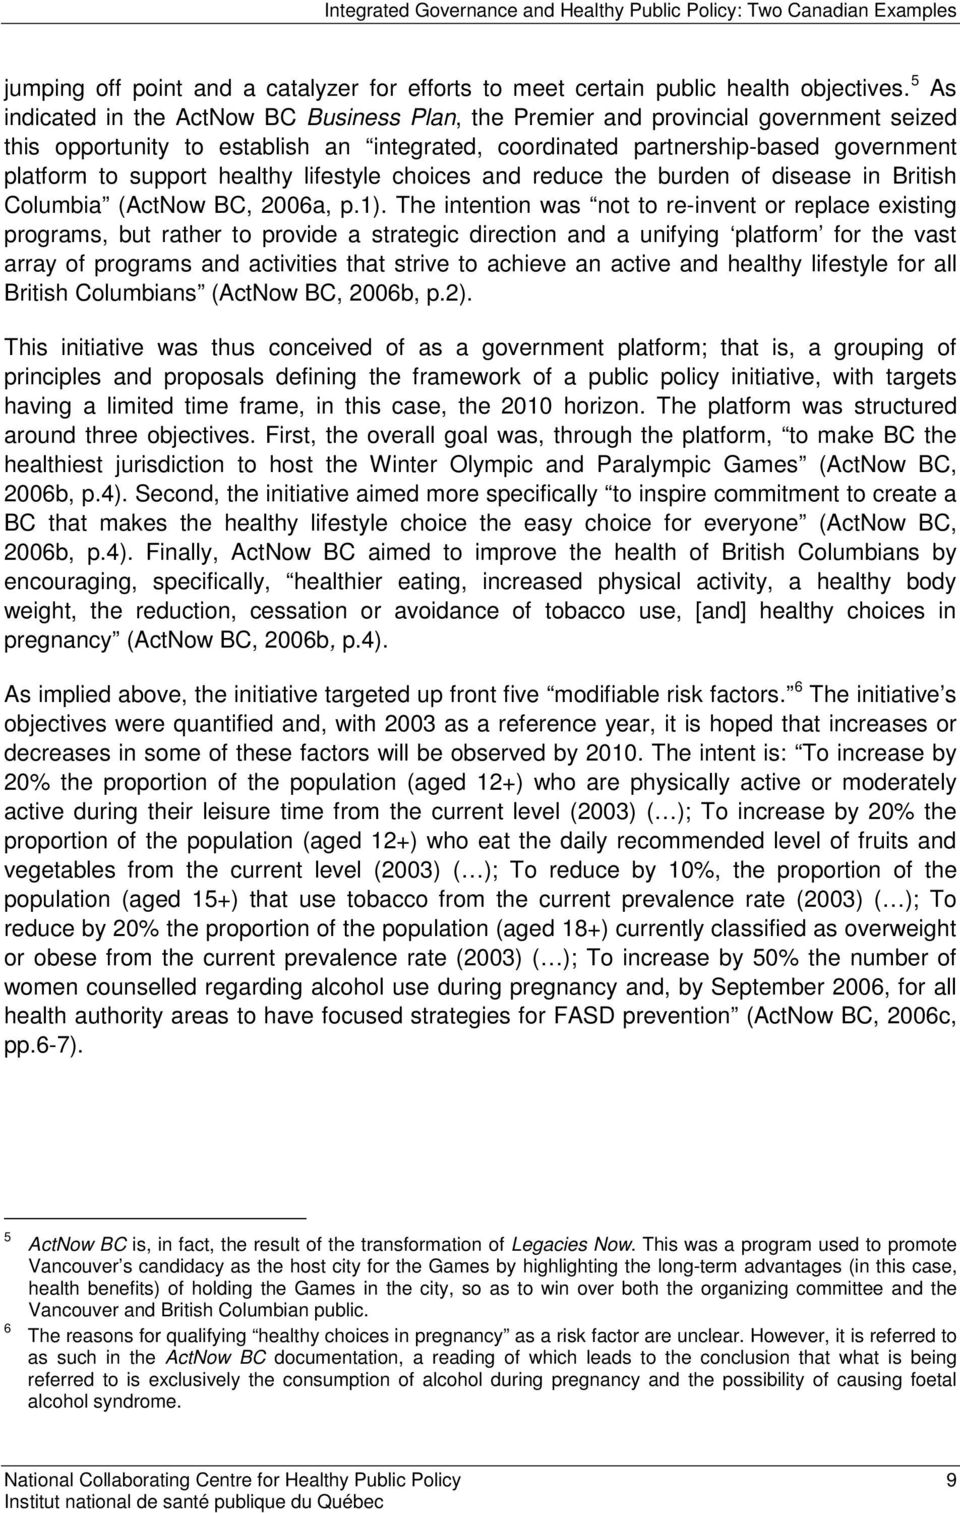 healthy lifestyle choices and reduce the burden of disease in British Columbia (ActNow BC, 2006a, p.1).